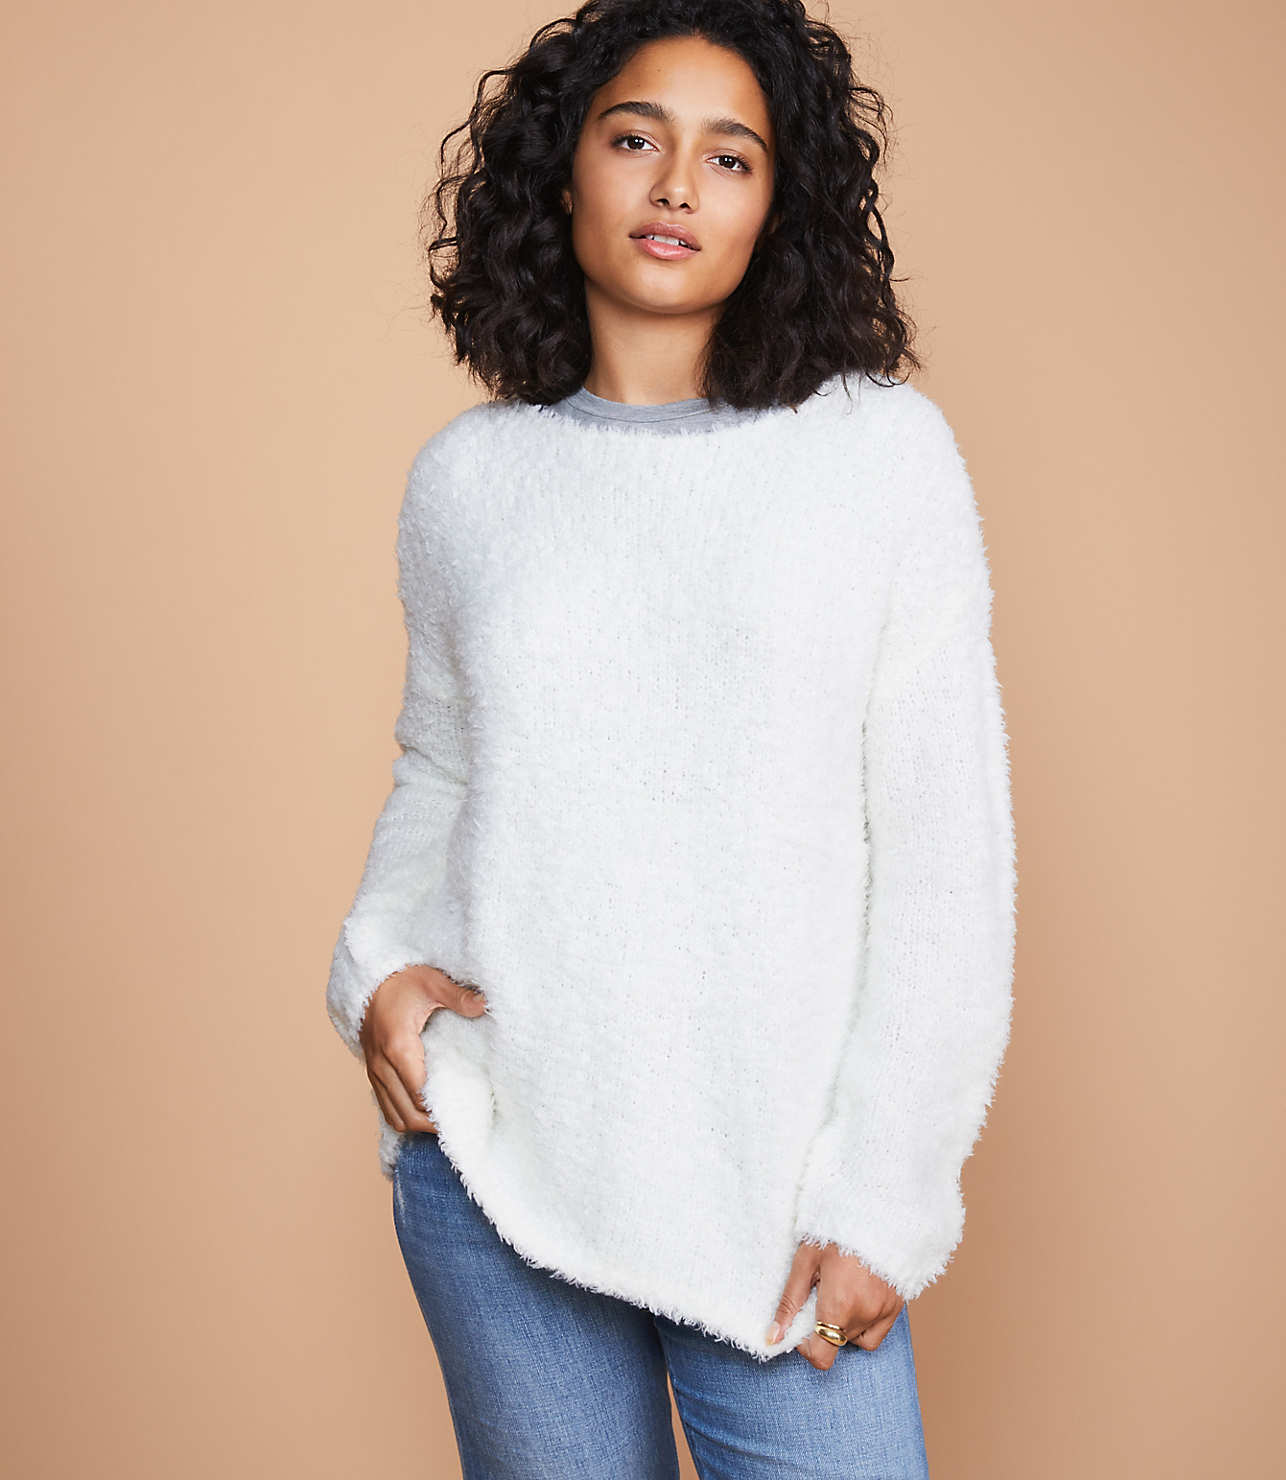 Love this woman fuzzy sweater - perfect for colder days!